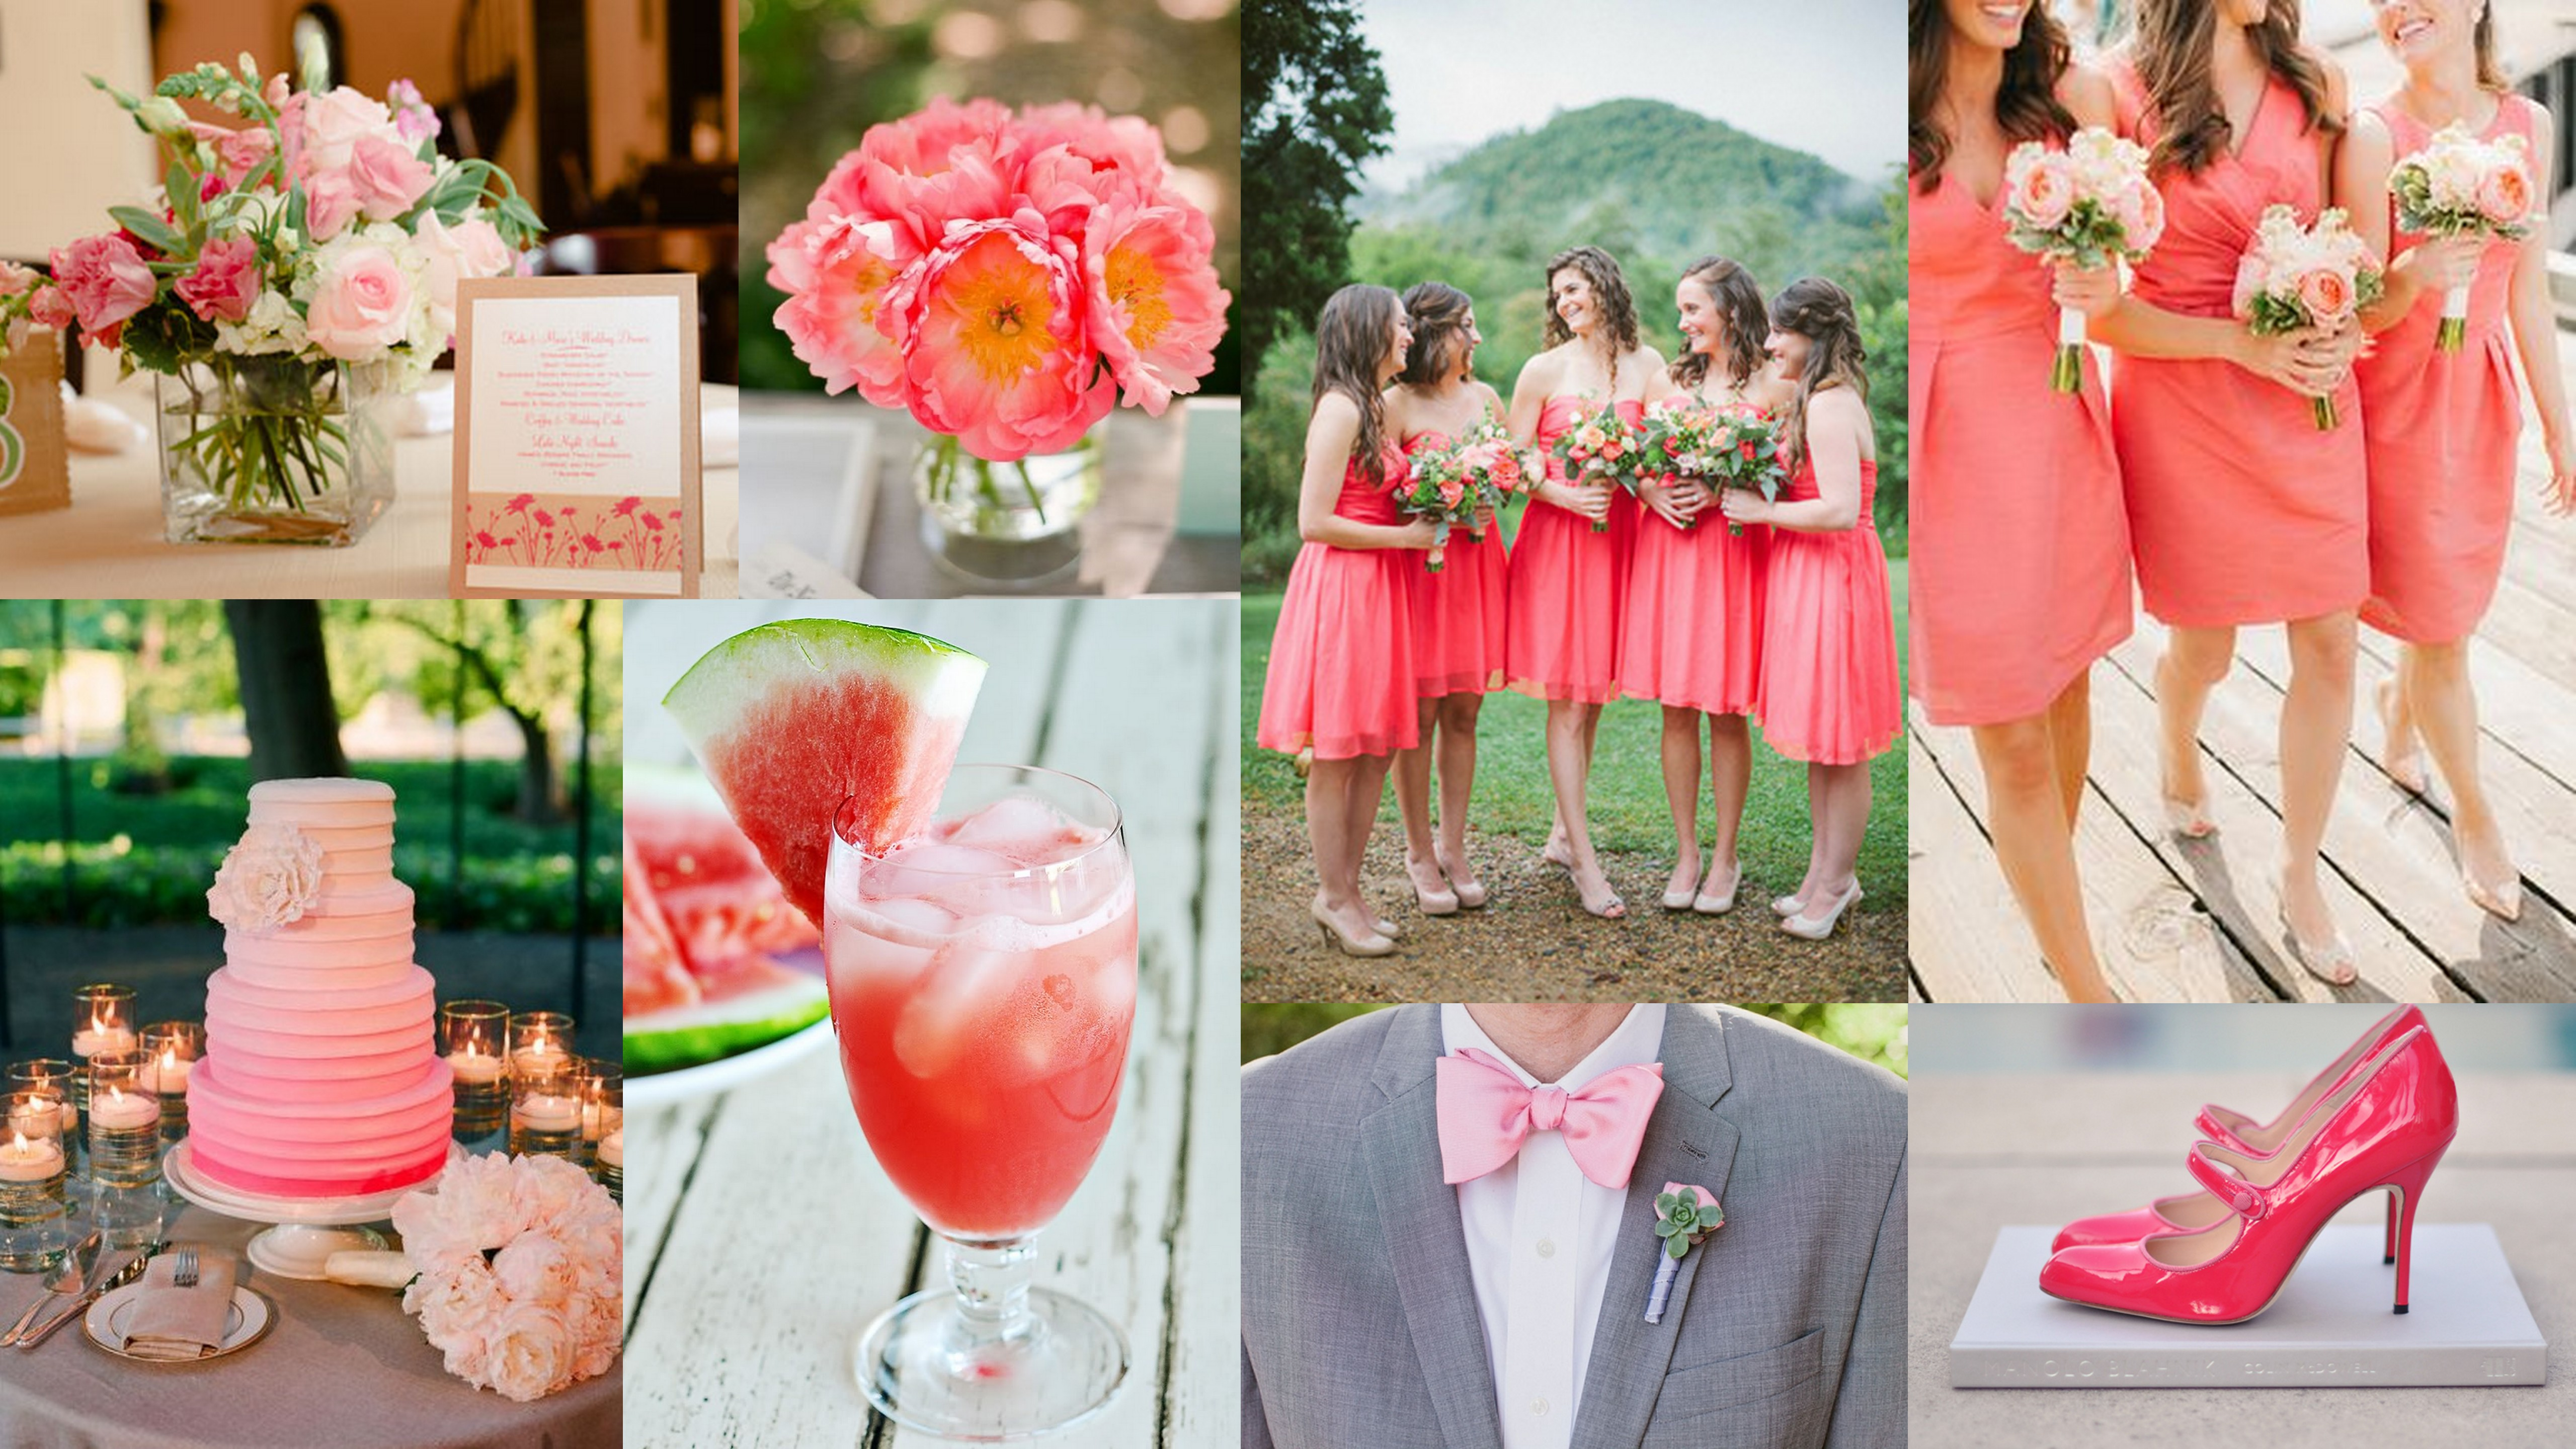 Beautiful places to register for a wedding wedding top 8 ideas to make your wedding unfor table shubhankar beautiful places to register for a wedding junglespirit Choice Image